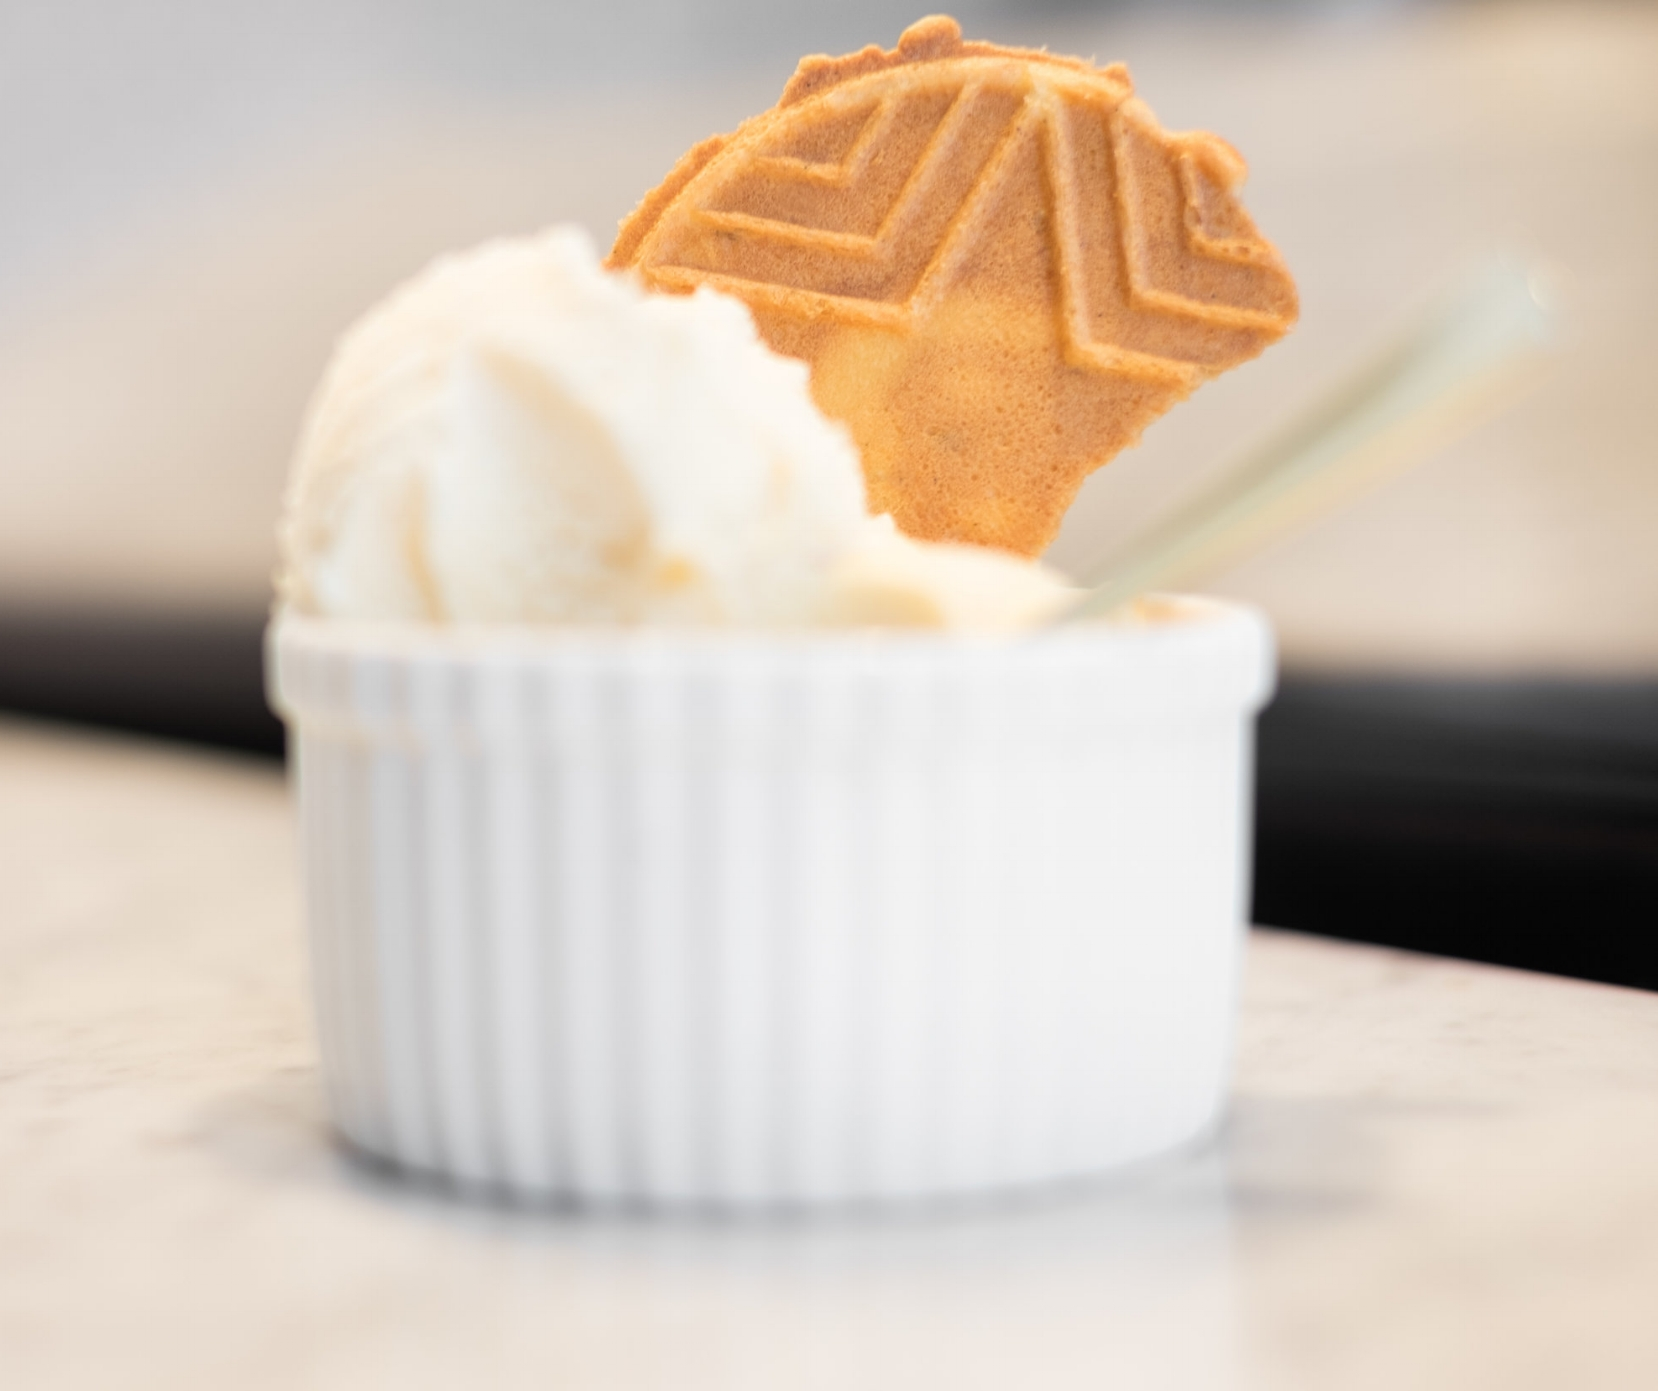 Pizzelles and Gelato at Gelateria Gemelli